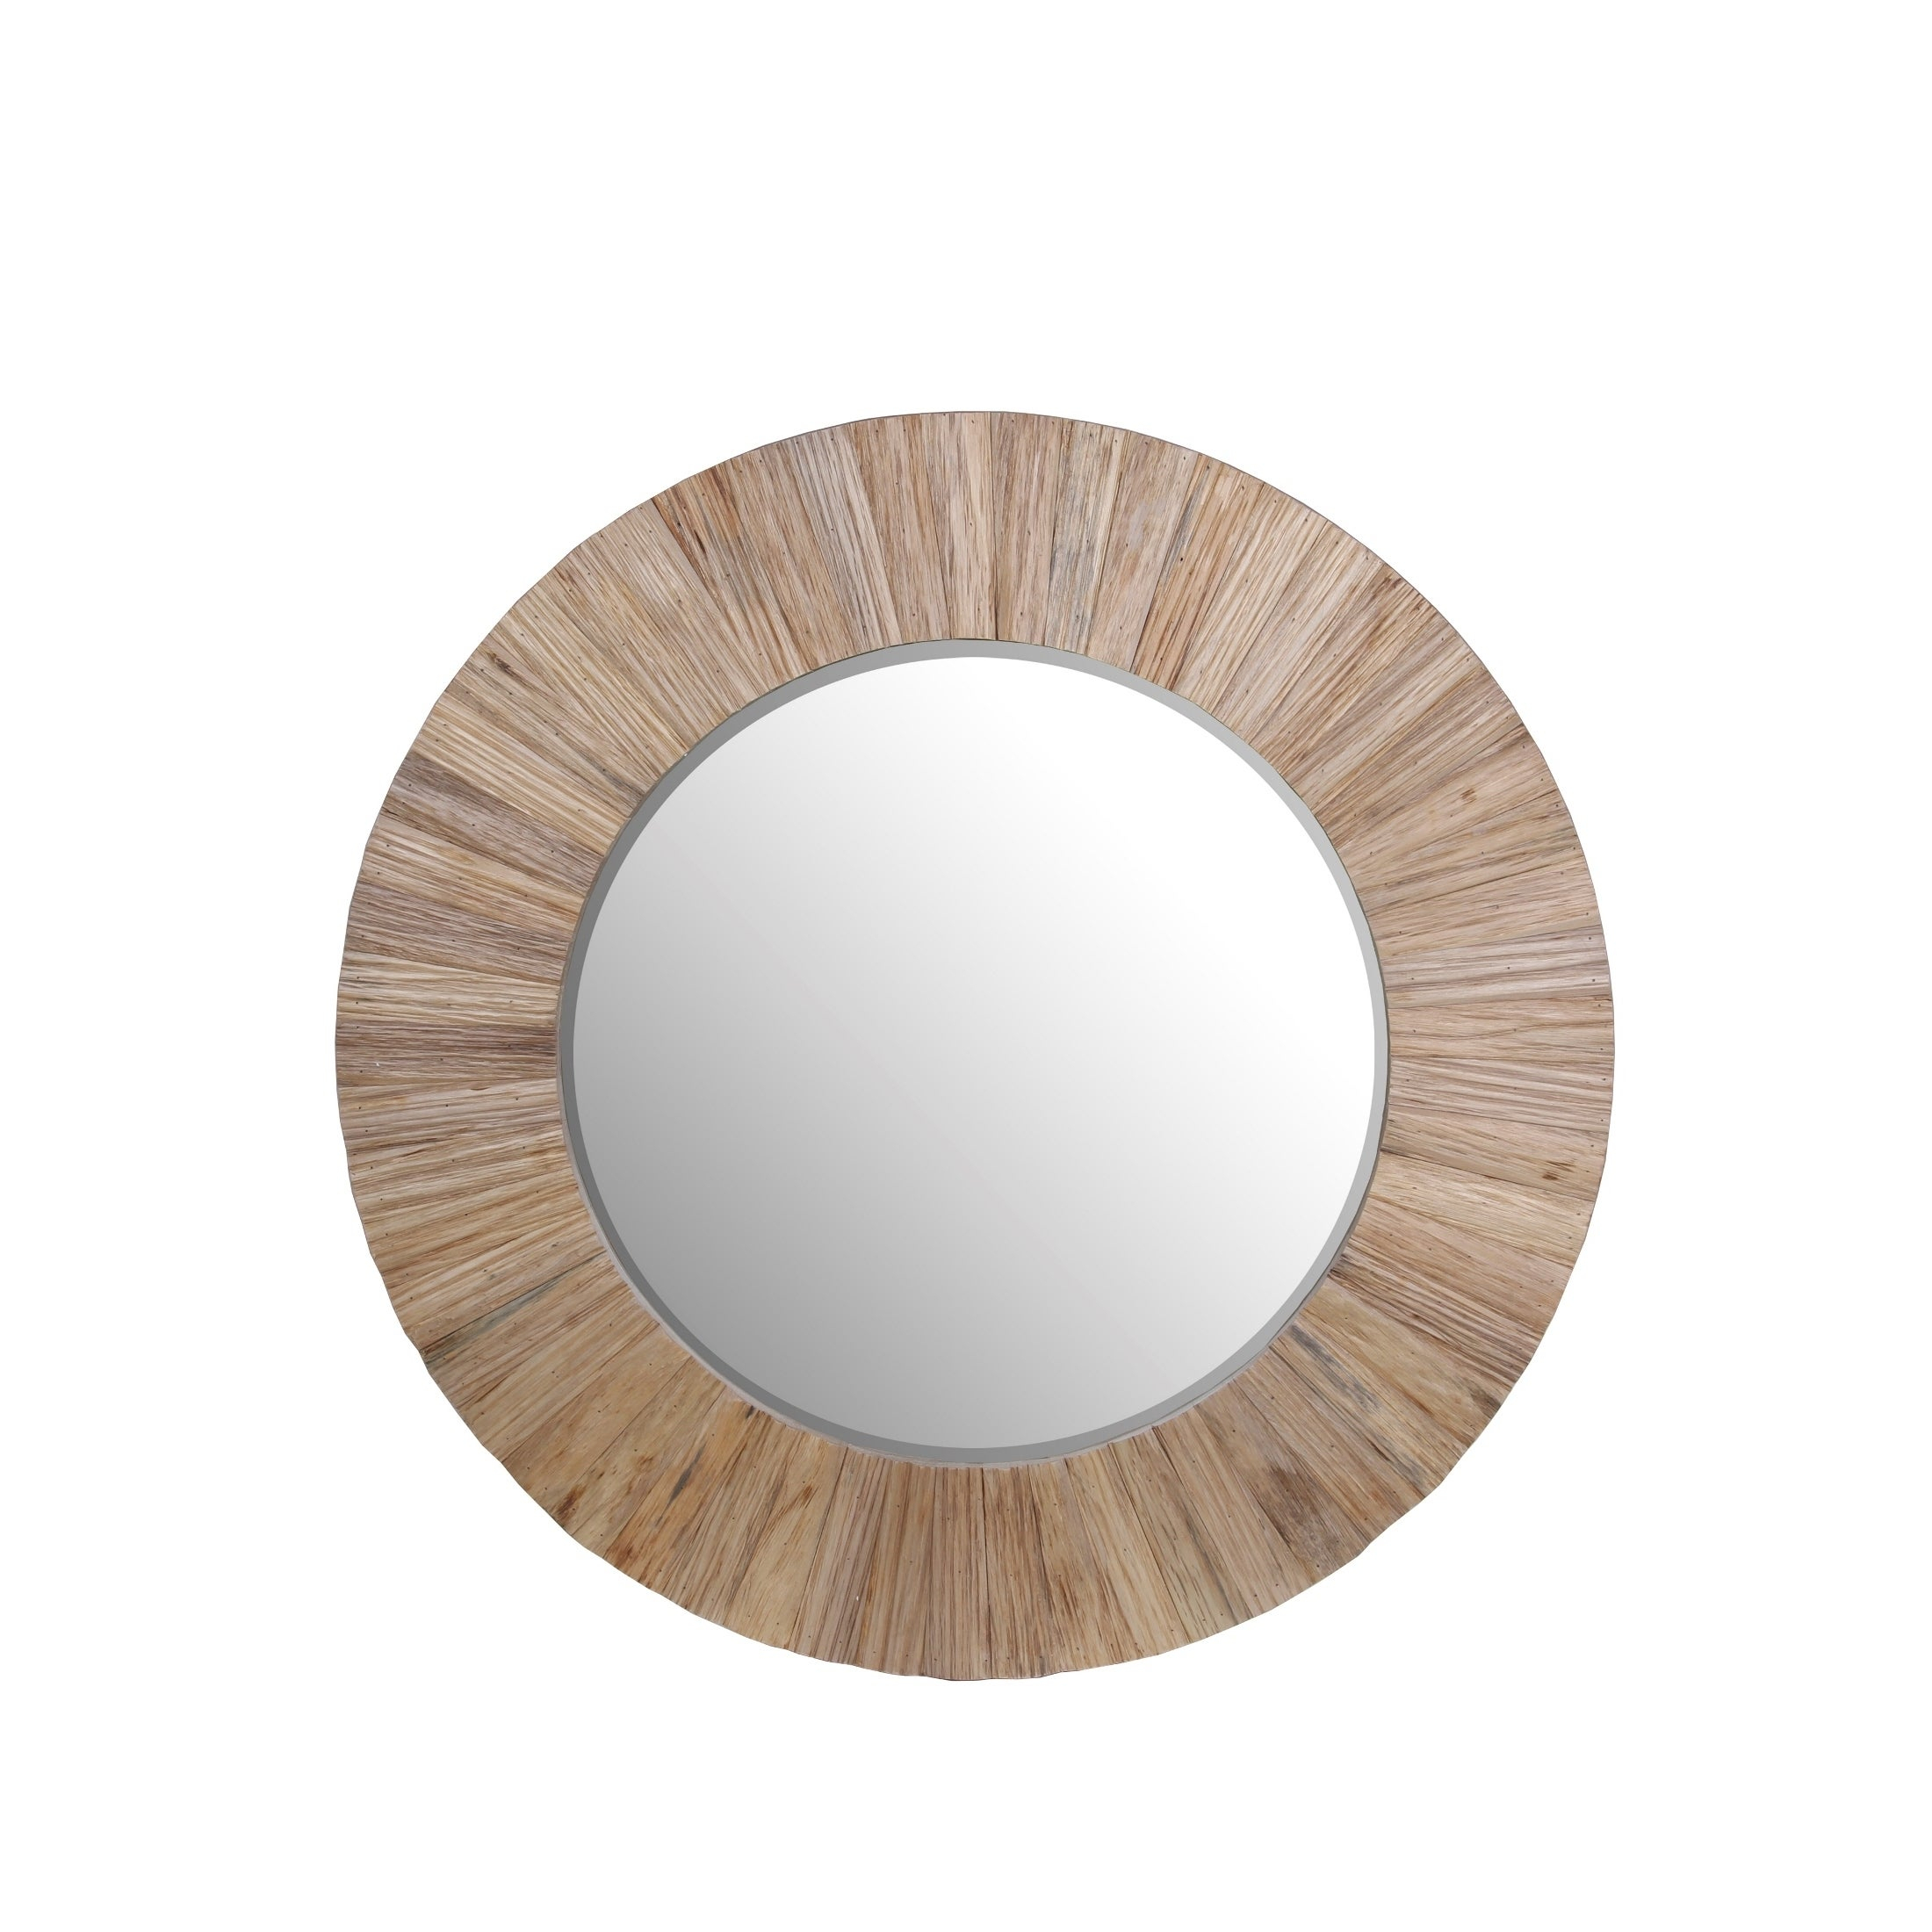 Privilege White Wood Accent Mirror With Regard To Wood Accent Mirrors (View 10 of 30)